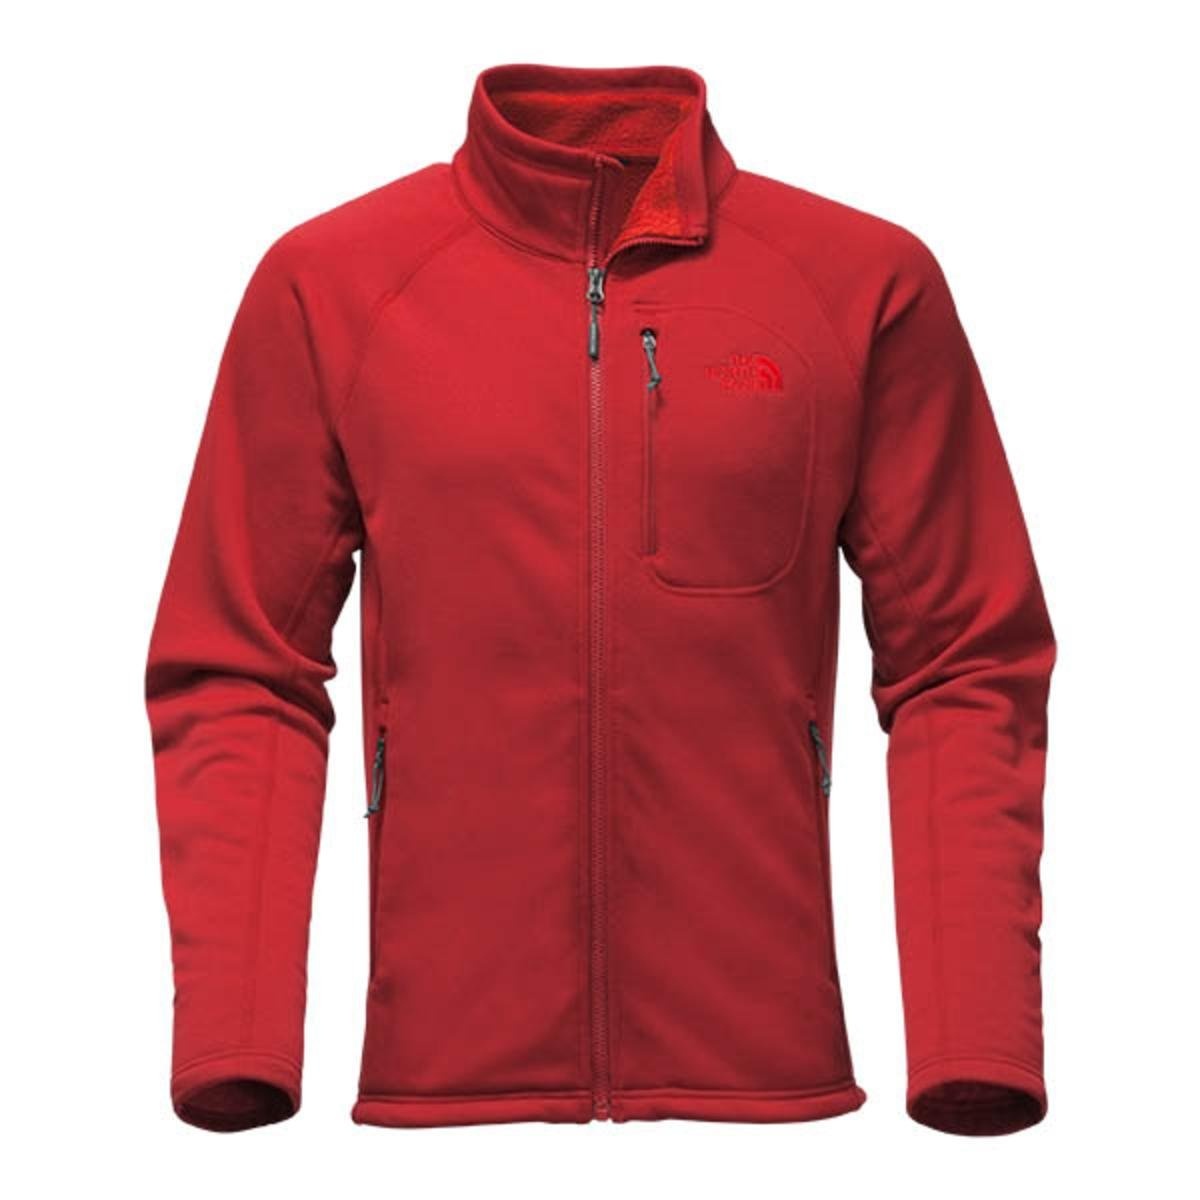 fe7a03ff7 The North Face Men's Red Timber Full-Zip Fleece Jacket Cardinal Red ...